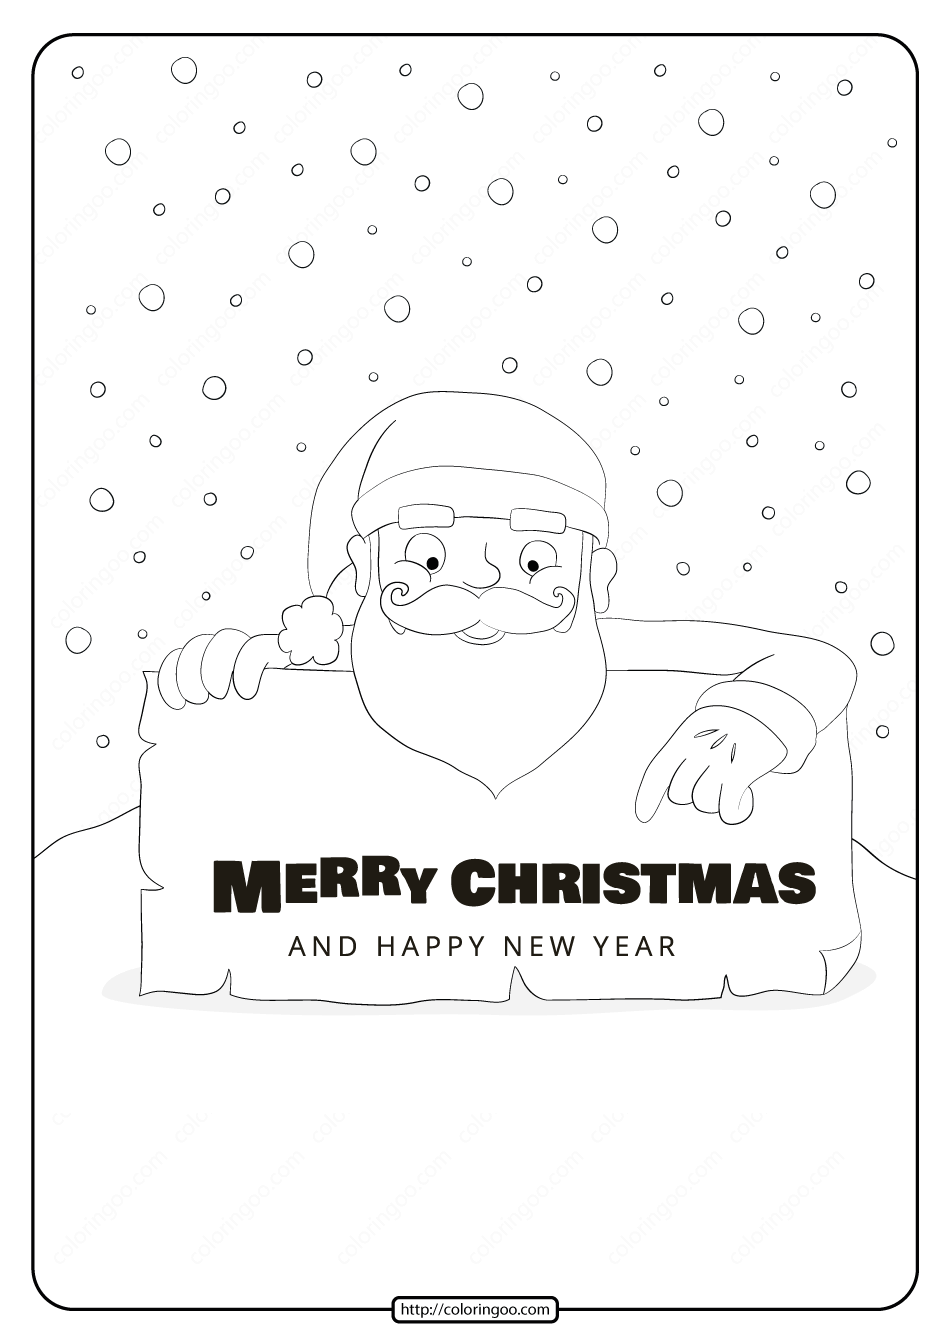 Merry Christmas and Happy New Year Coloring Pages